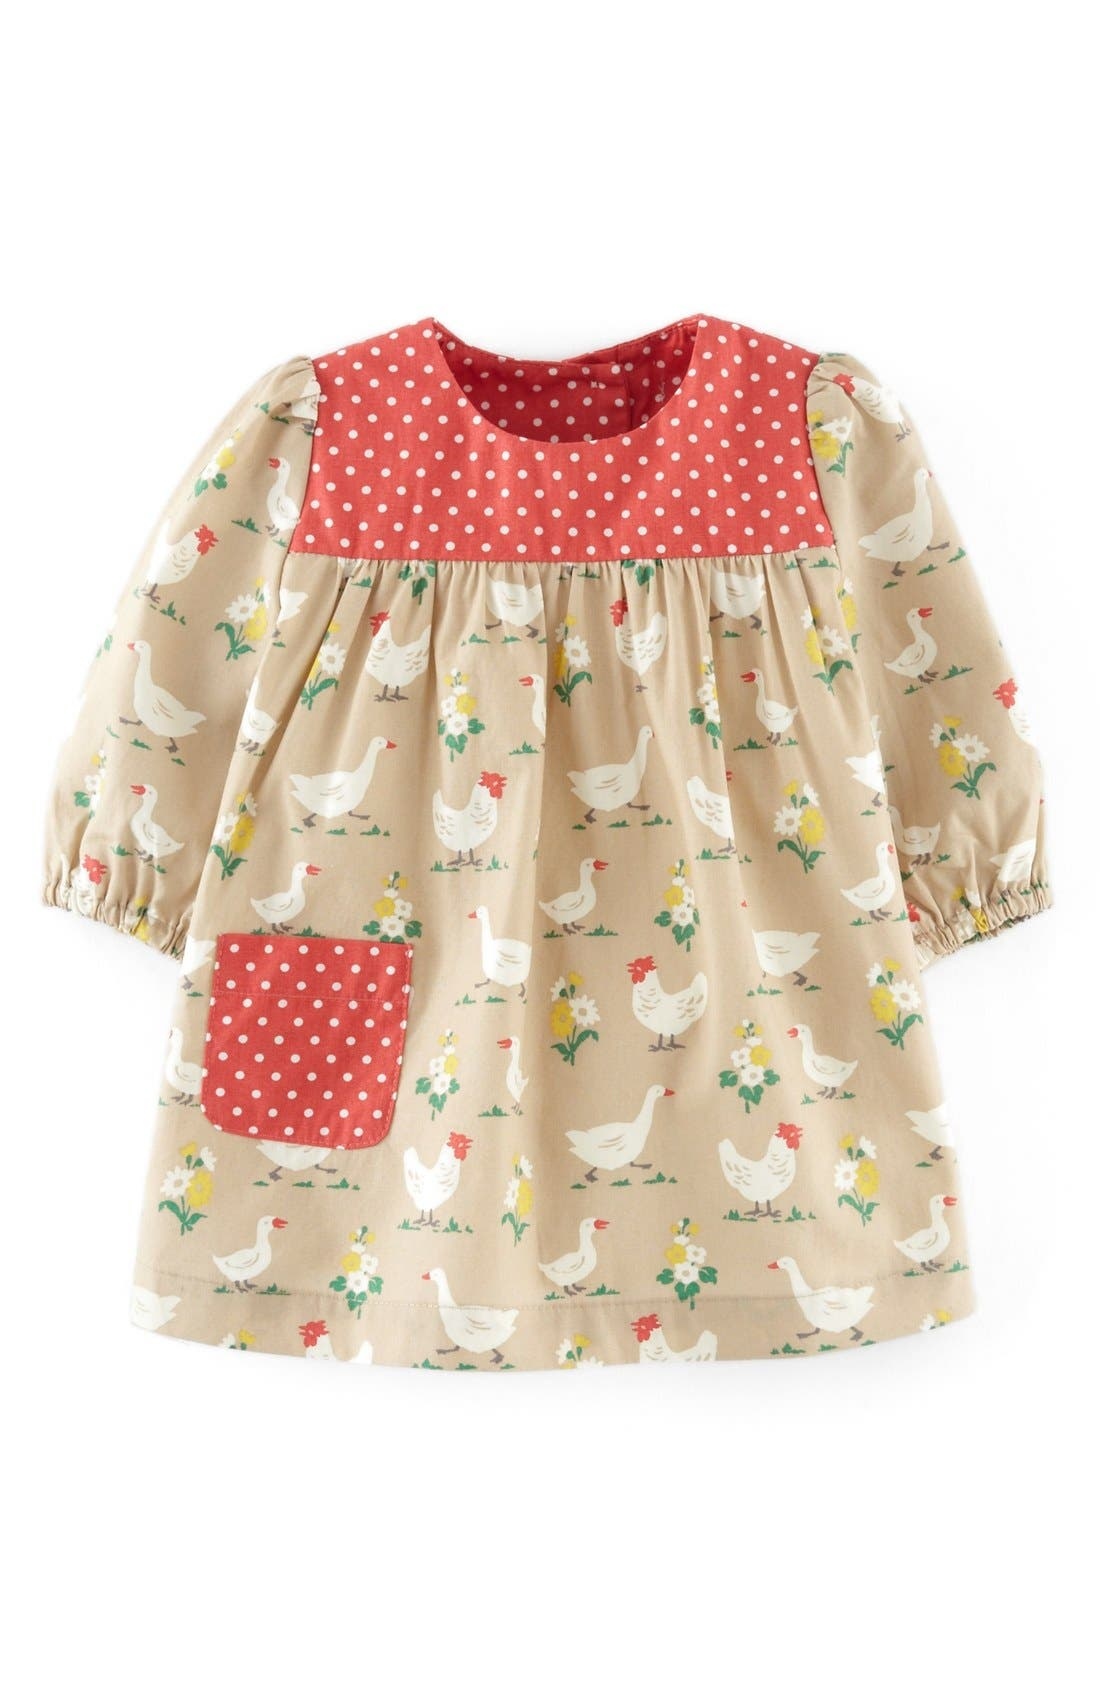 Alternate Image 1 Selected - Mini Boden Hotchpotch Dress (Baby Girls)